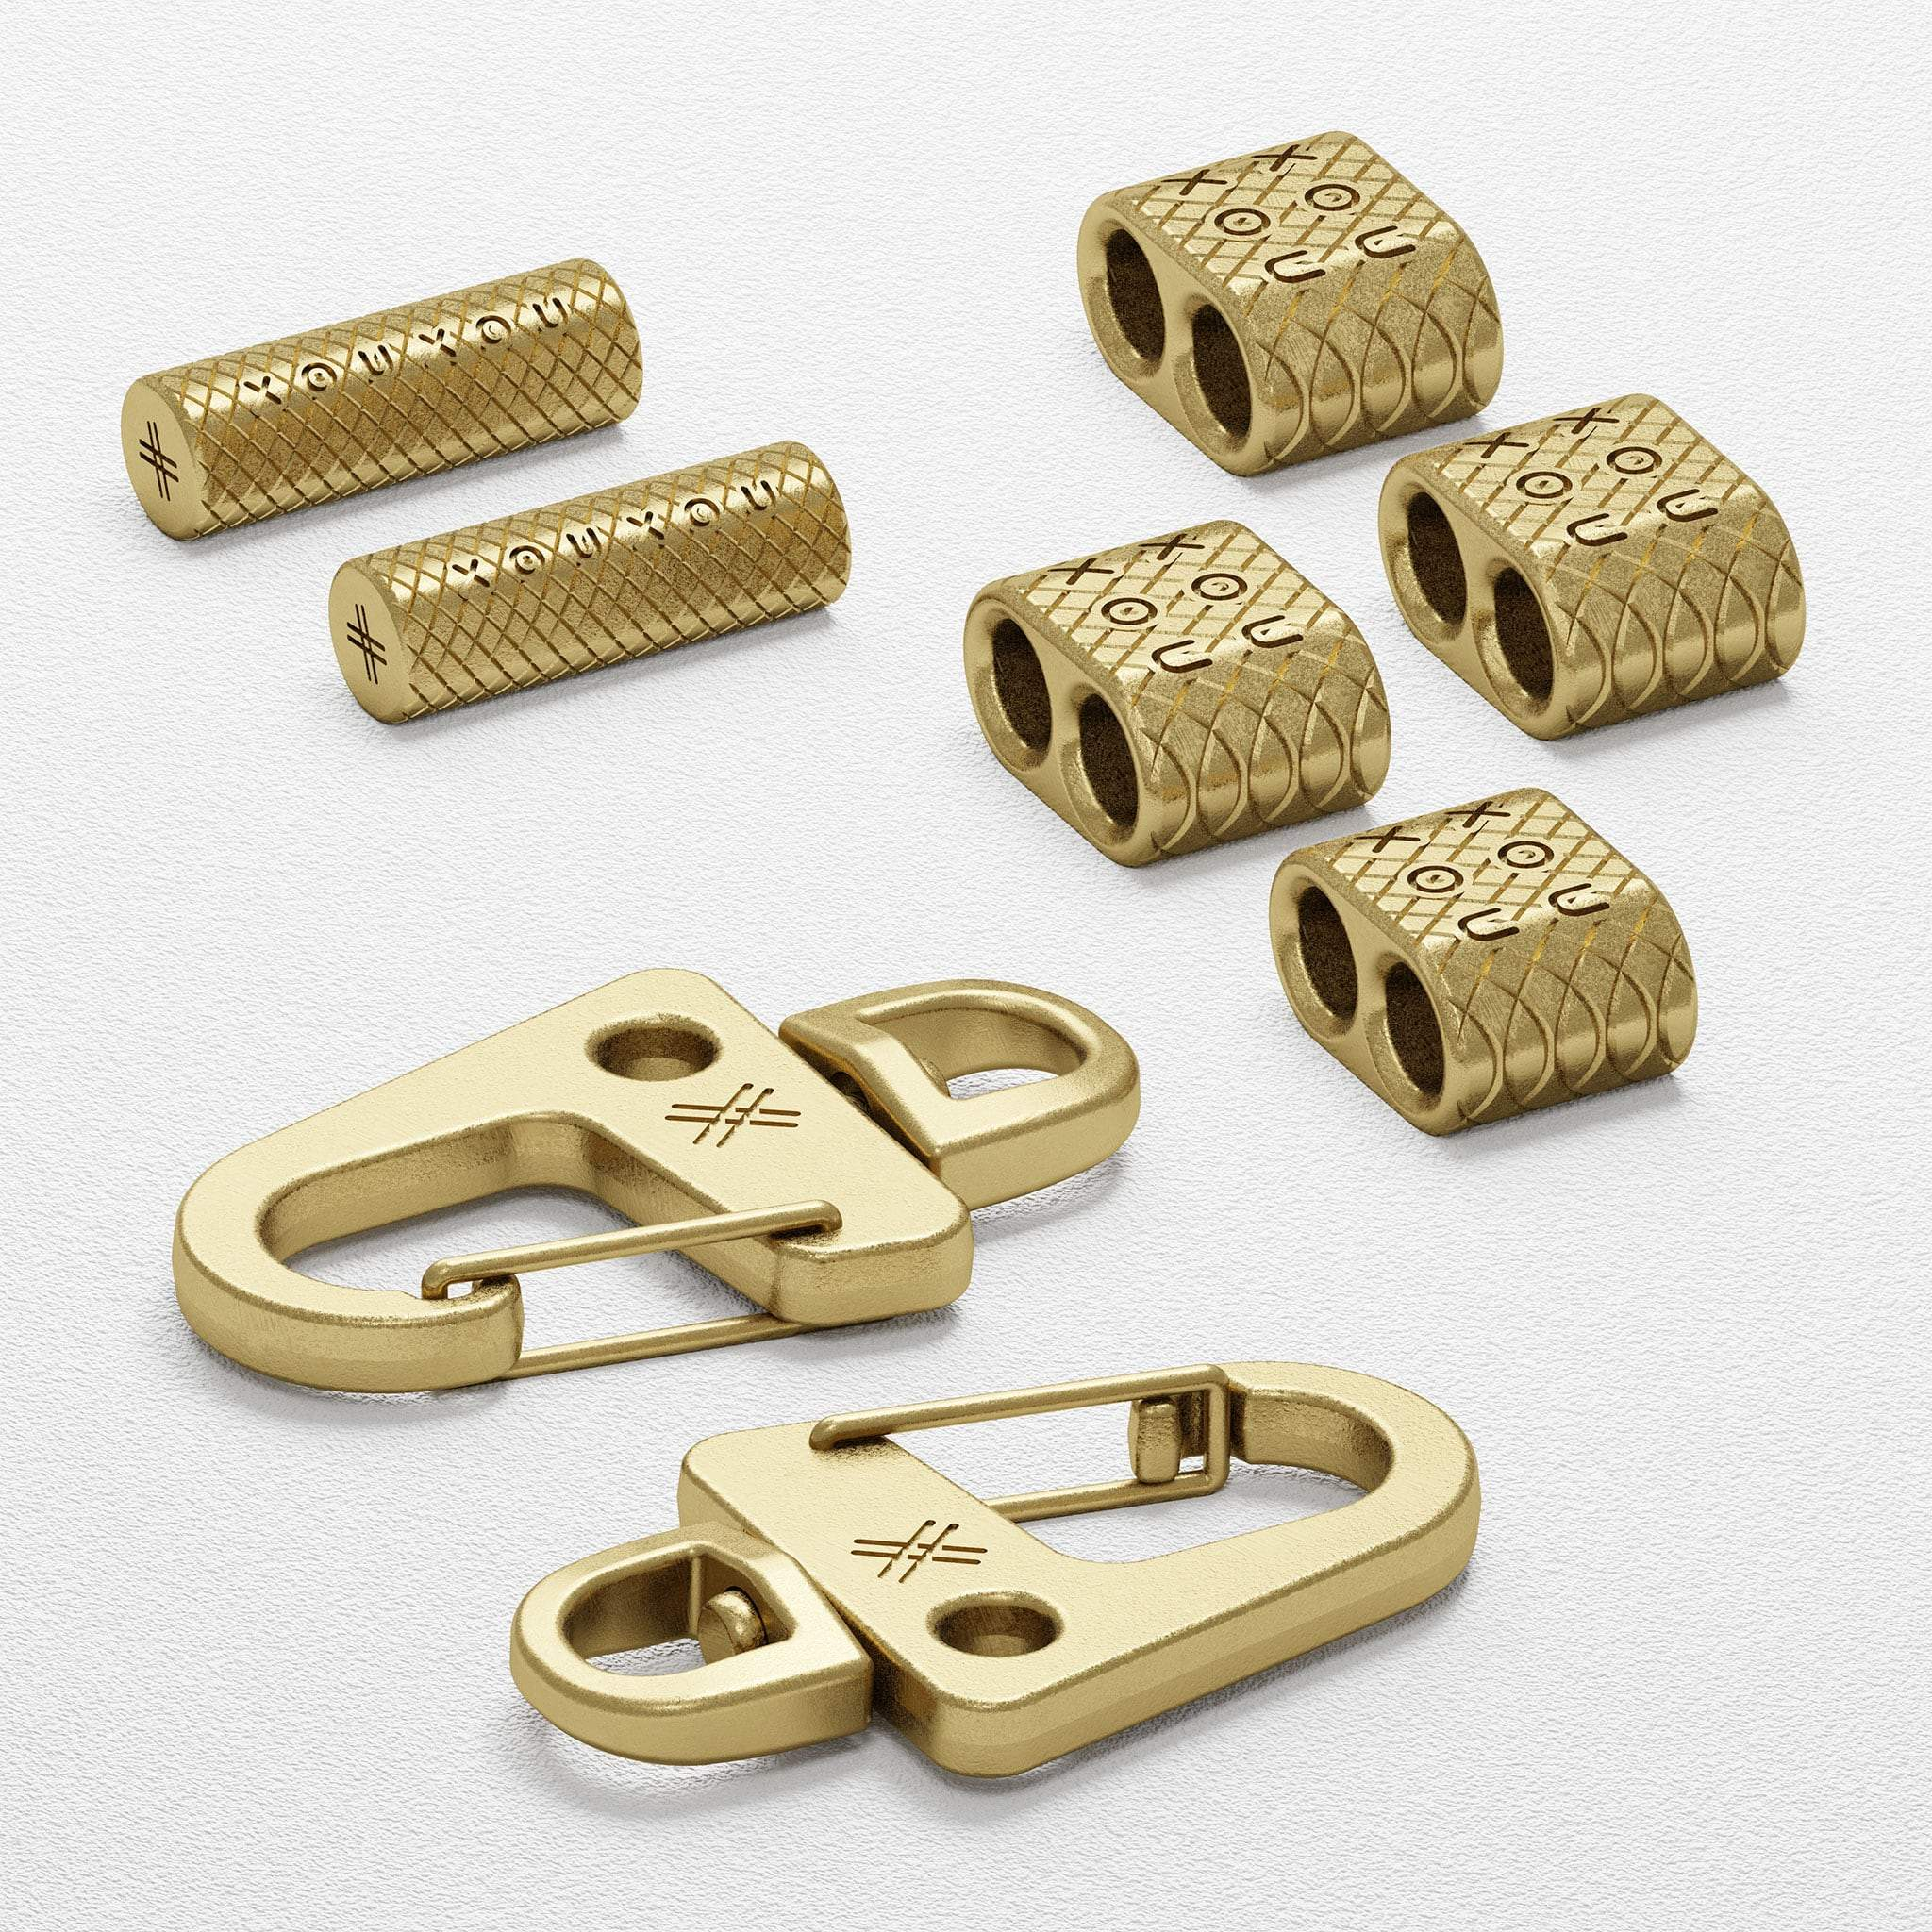 Brass Carabiner Rope Metal Parts